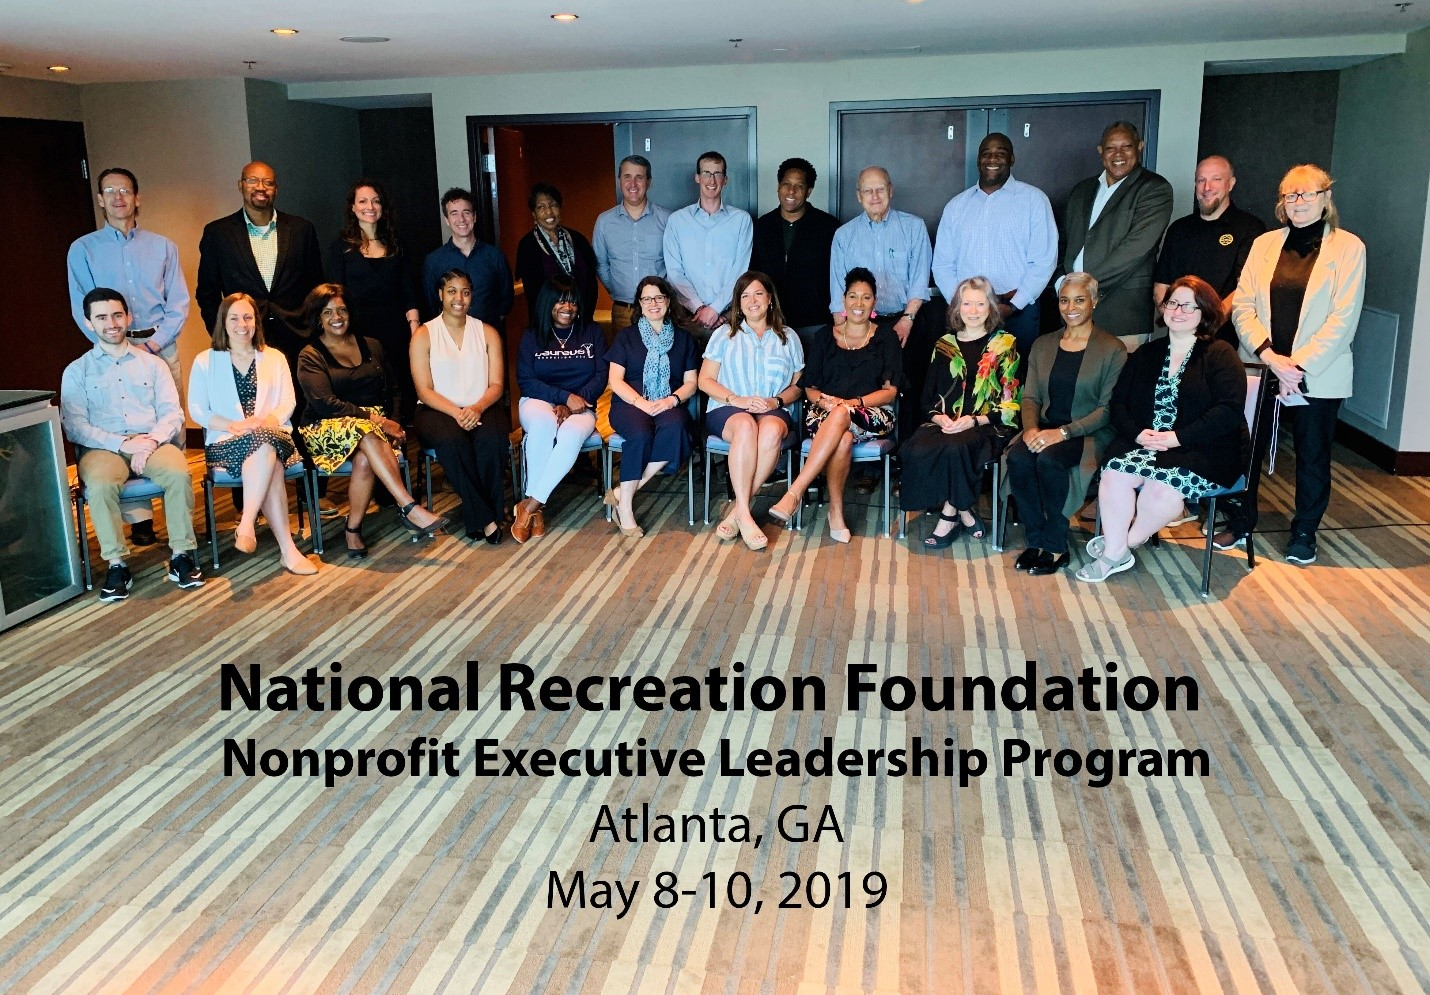 NELP Attendees